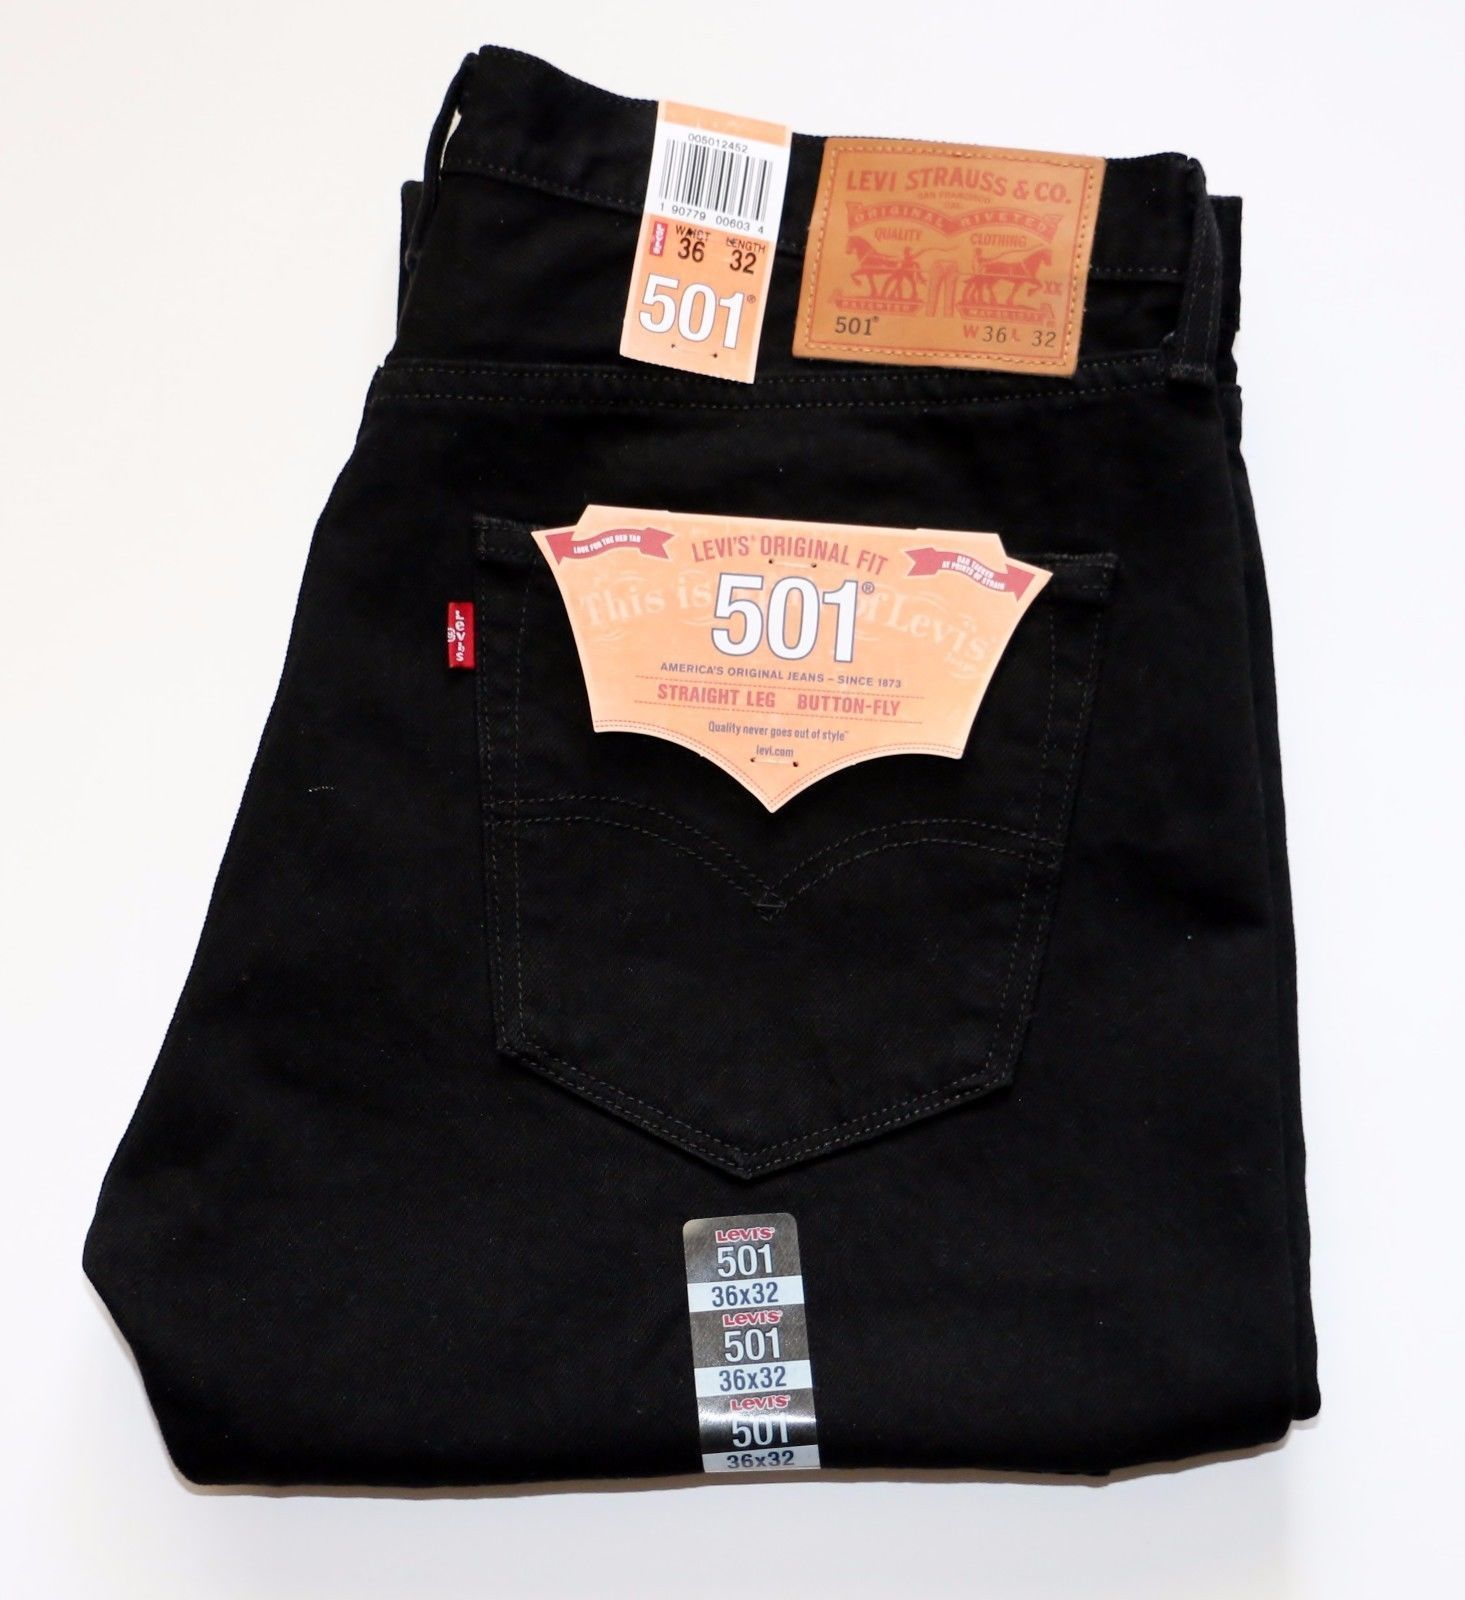 1ab8ec9cc60 S l1600. S l1600. LEVIS 501 MADE IN USA ORIGINAL FIT MEN'S JEANS NEW Cone  Mills White Oak Black